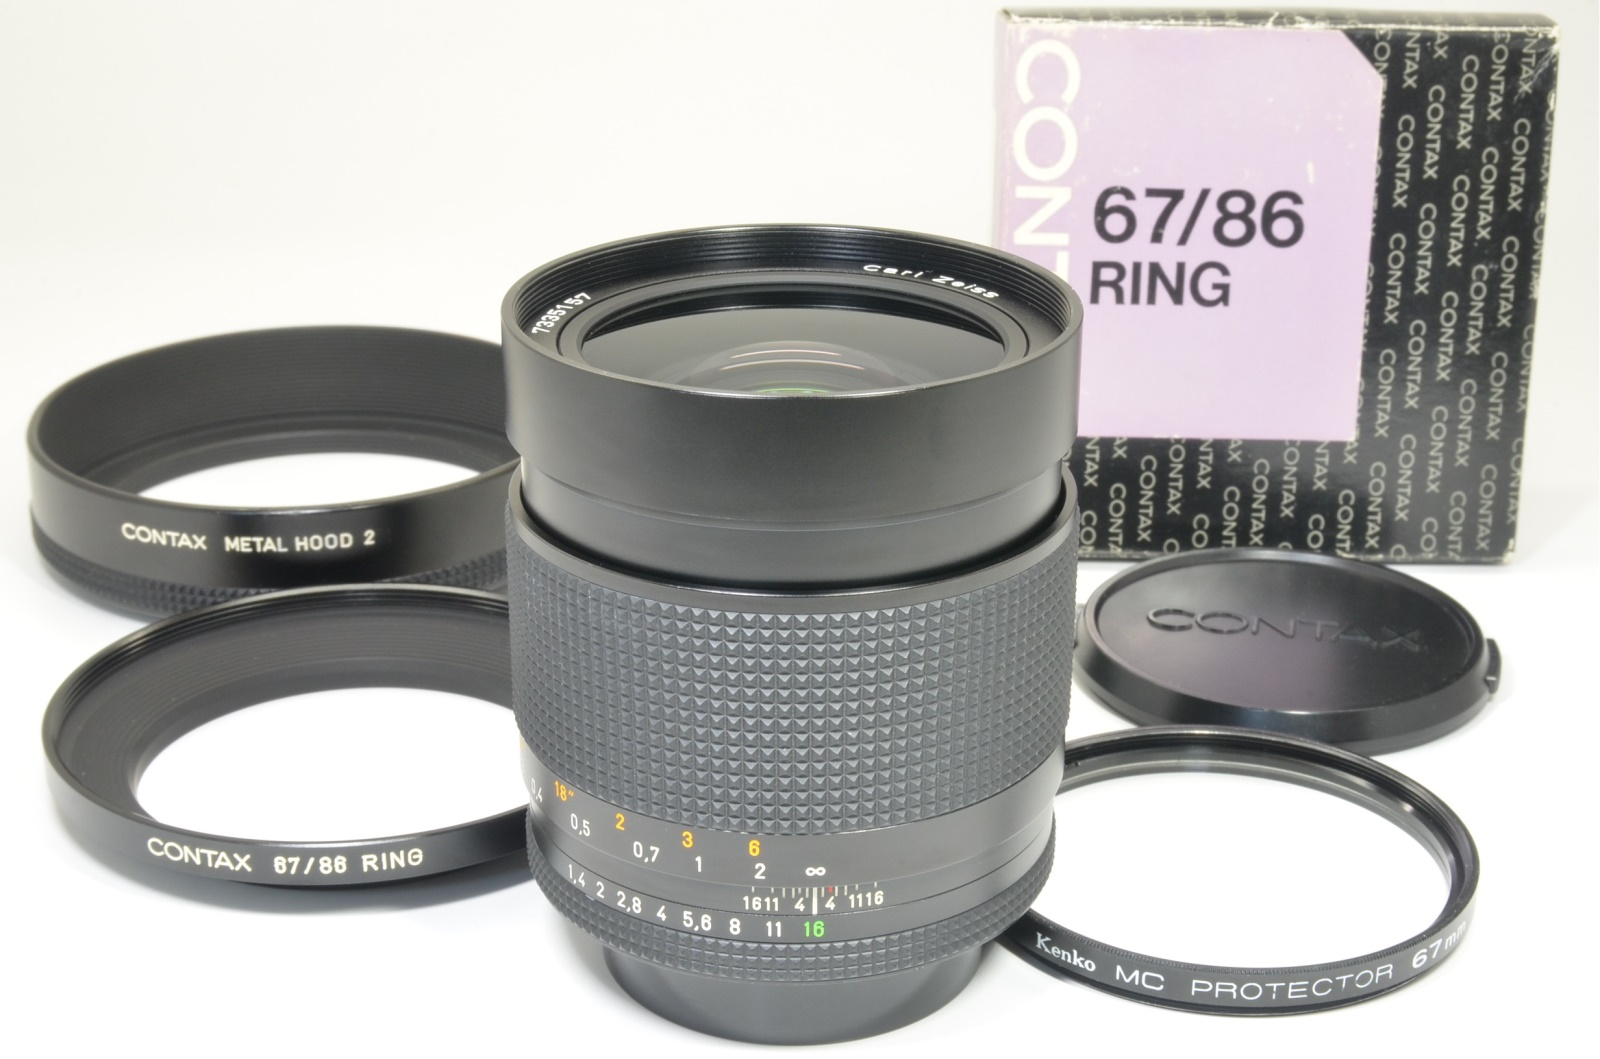 contax carl zeiss distagon t* 35mm f1.4 mmj made in japan with lens hoods #a1407 shooting tested